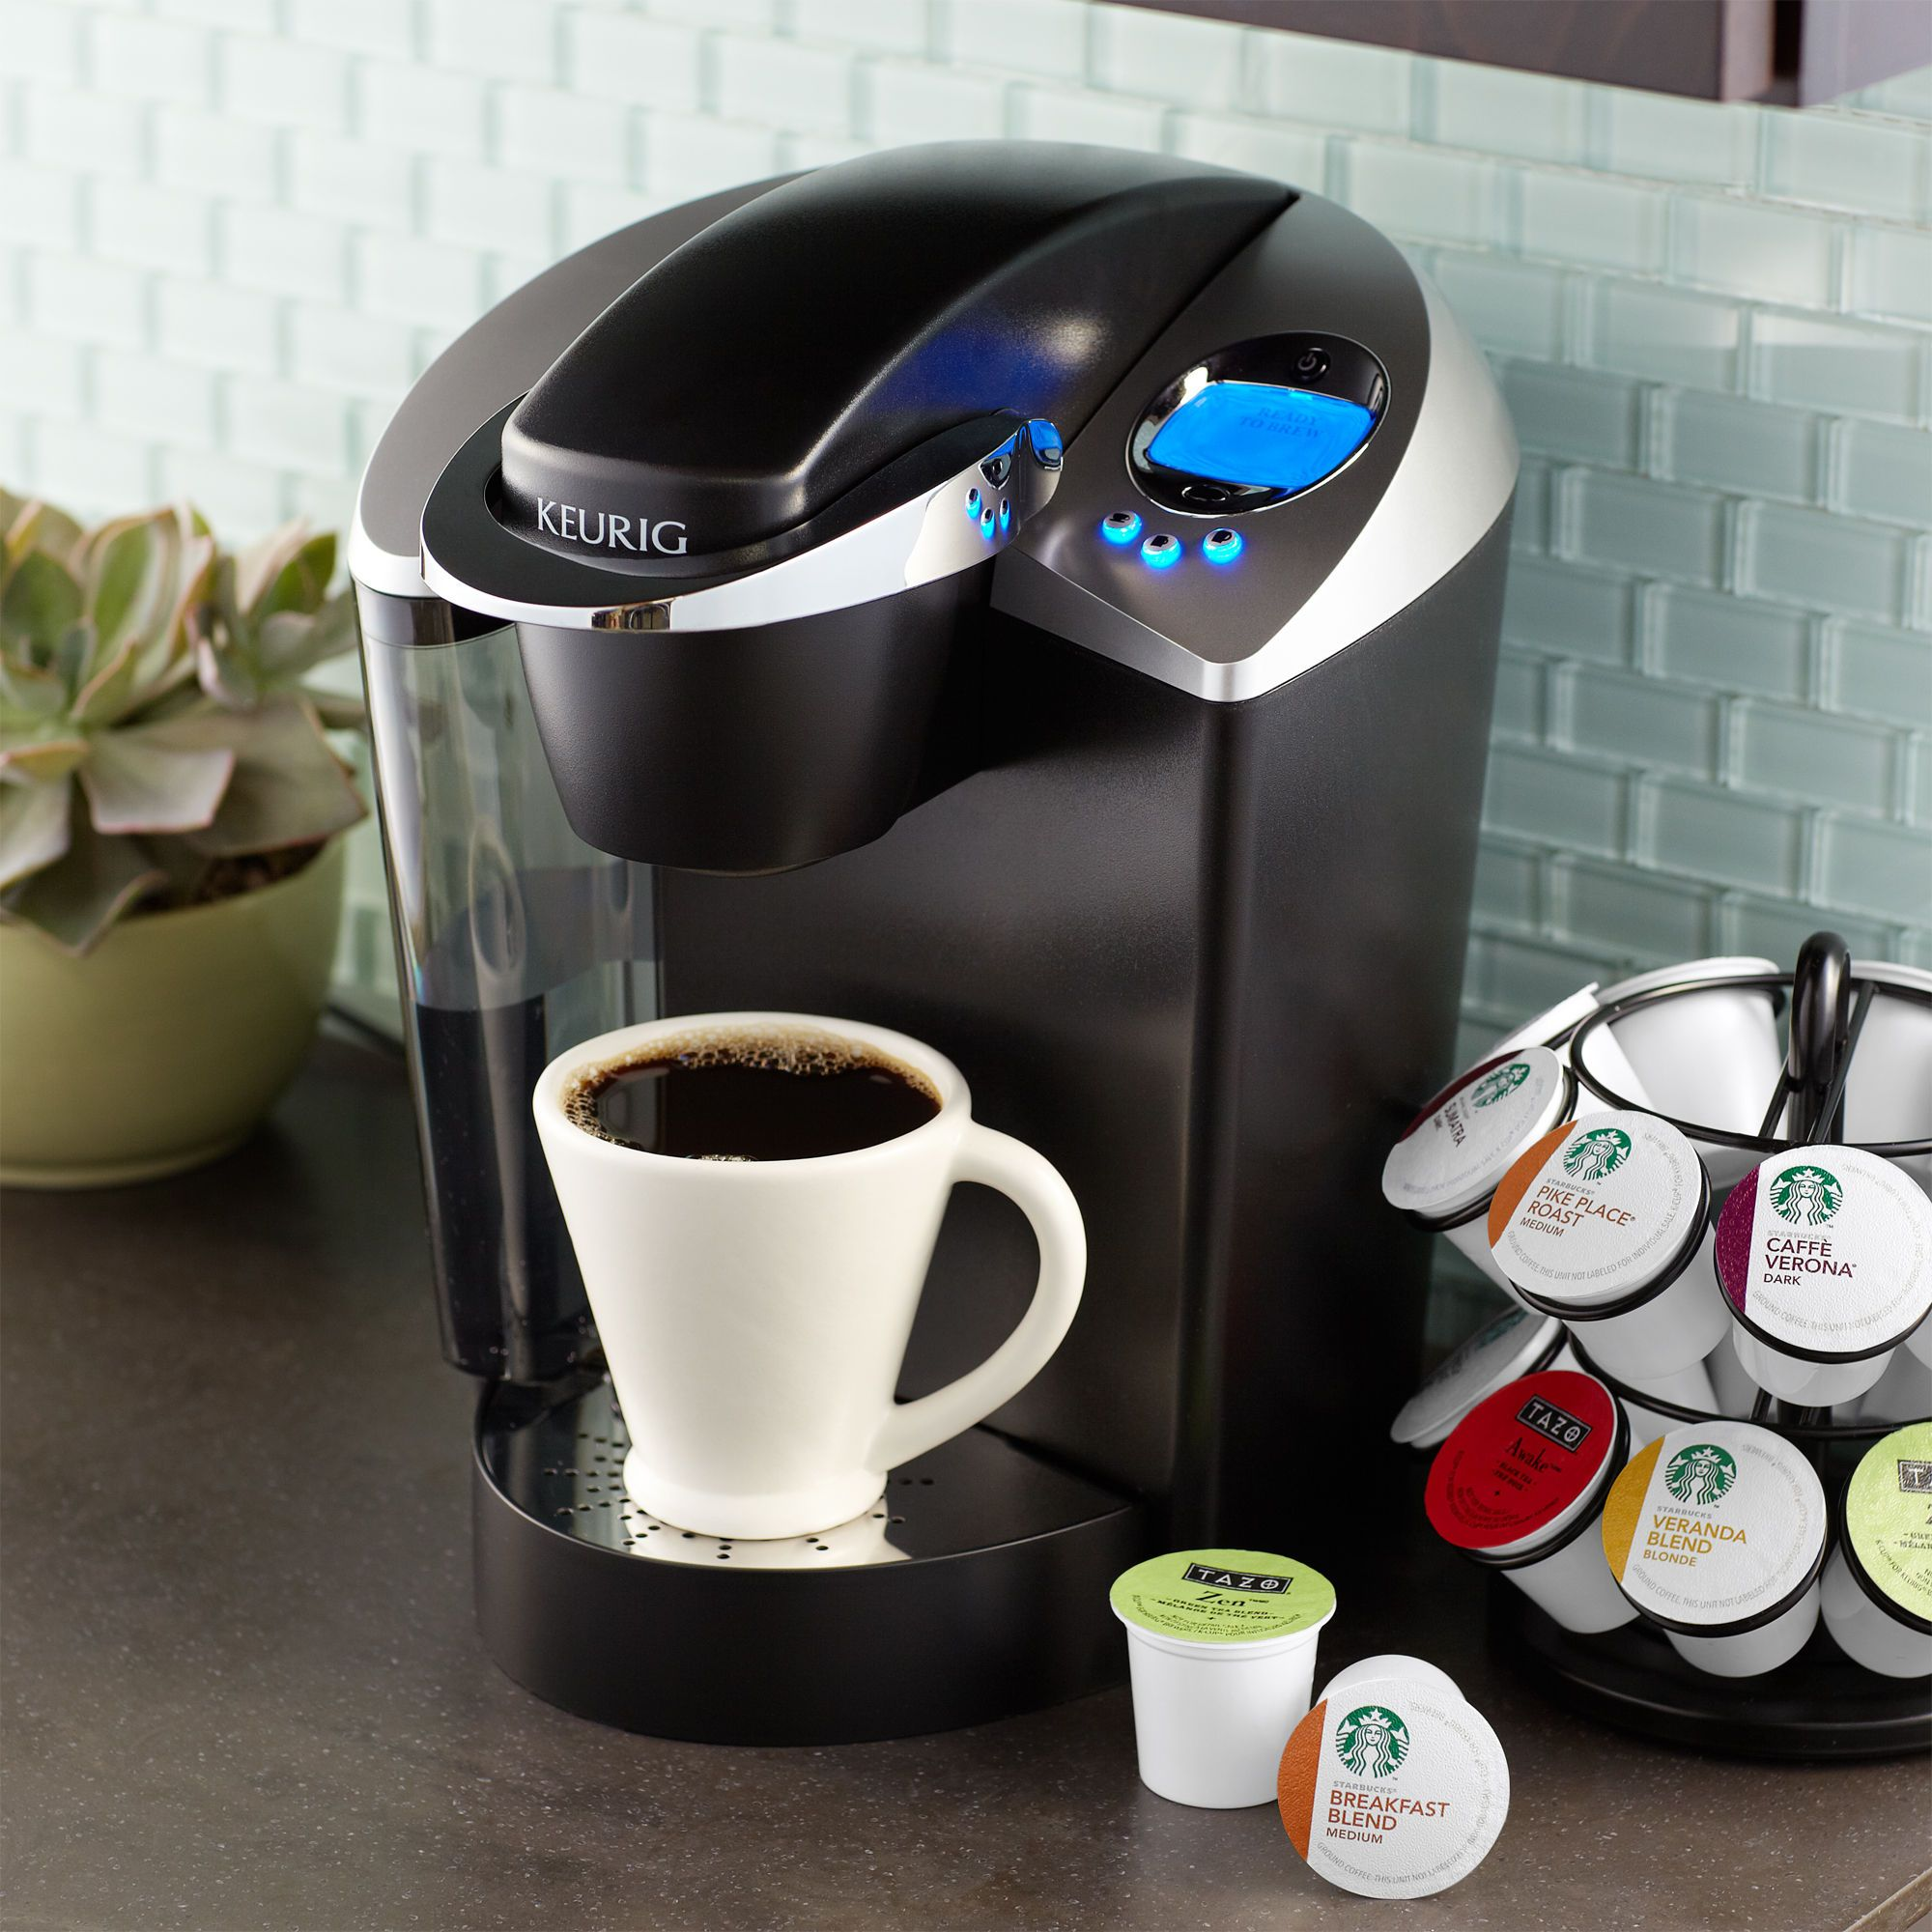 B60 Keurig Special Edition Brewing System A Single Cup Home With Modern Styling